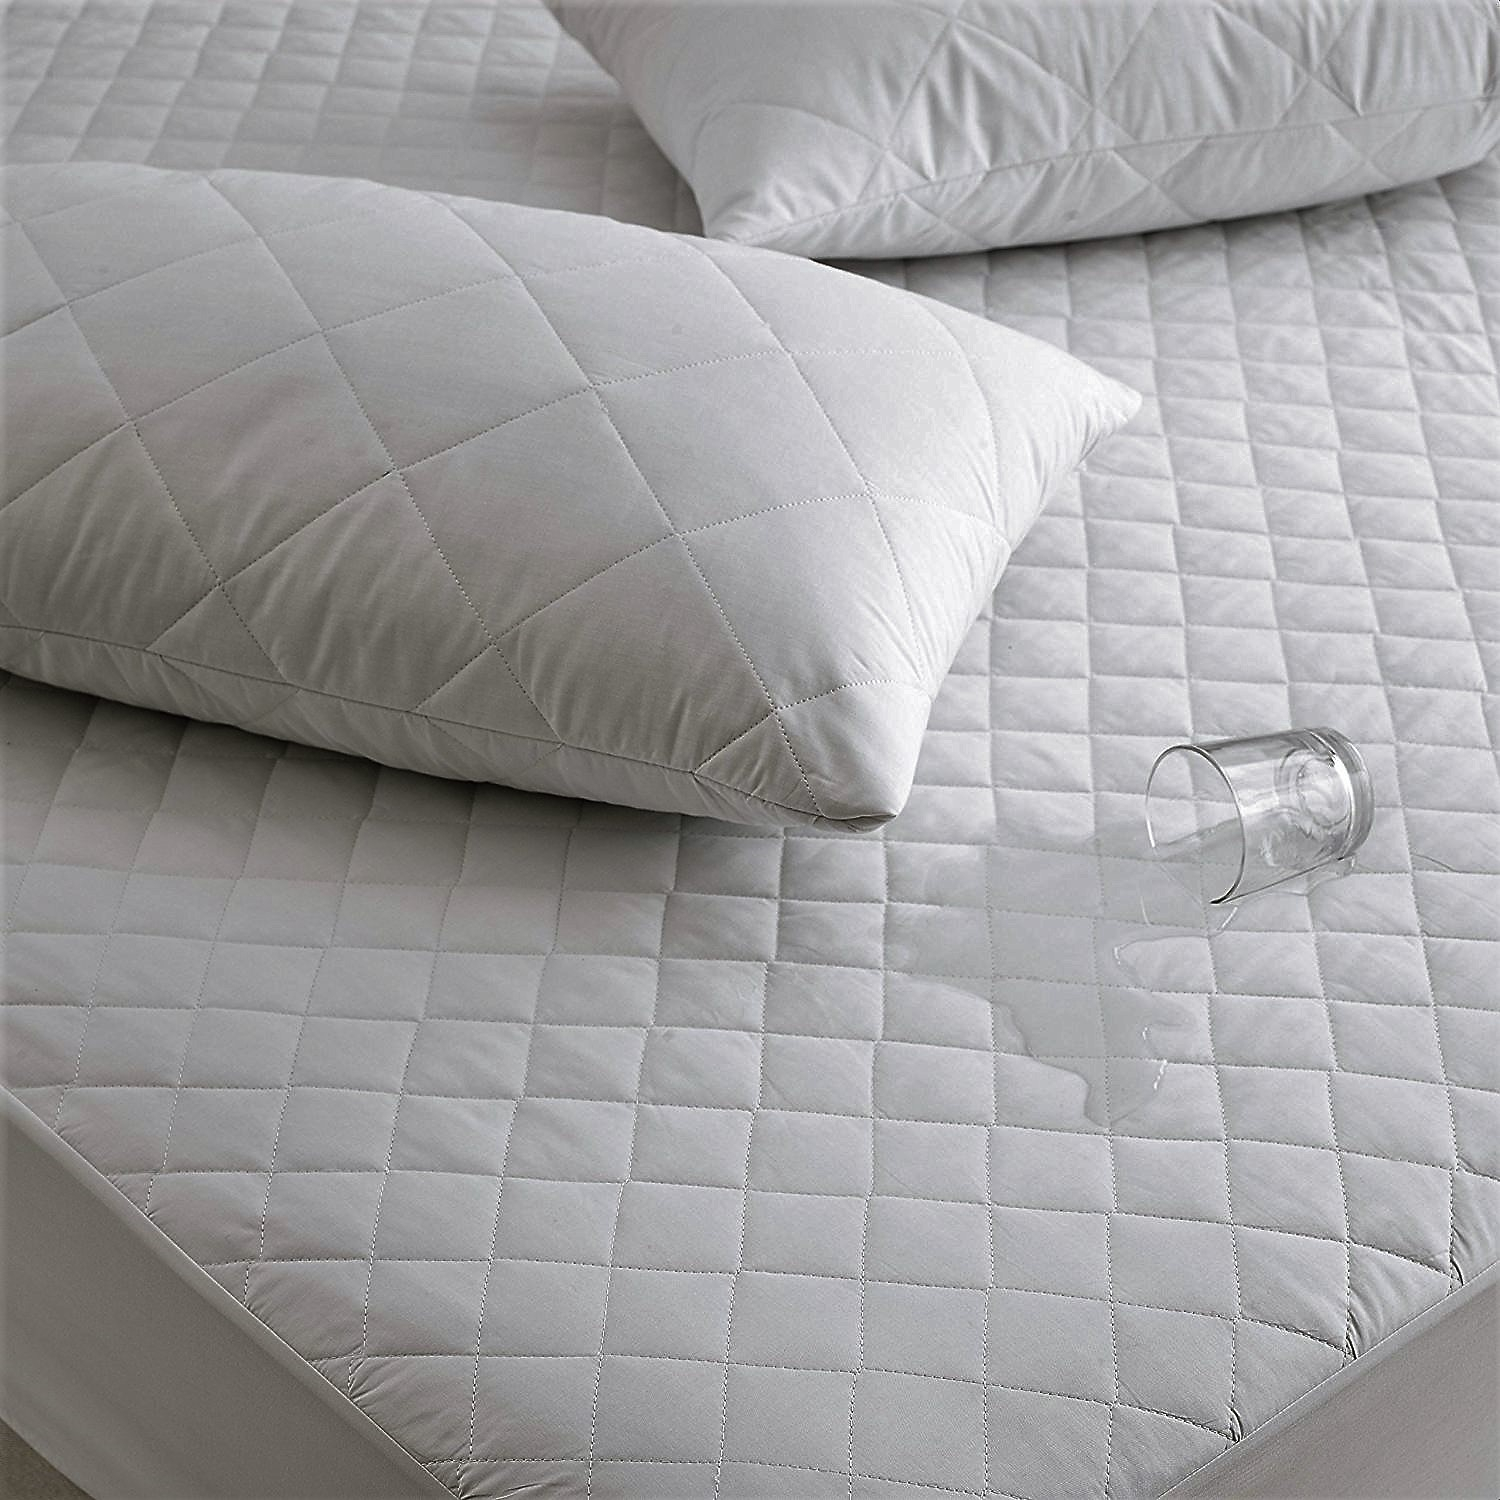 dacron coolmax delivery img next mattresses protectors mattress day fitted htm select c sheet